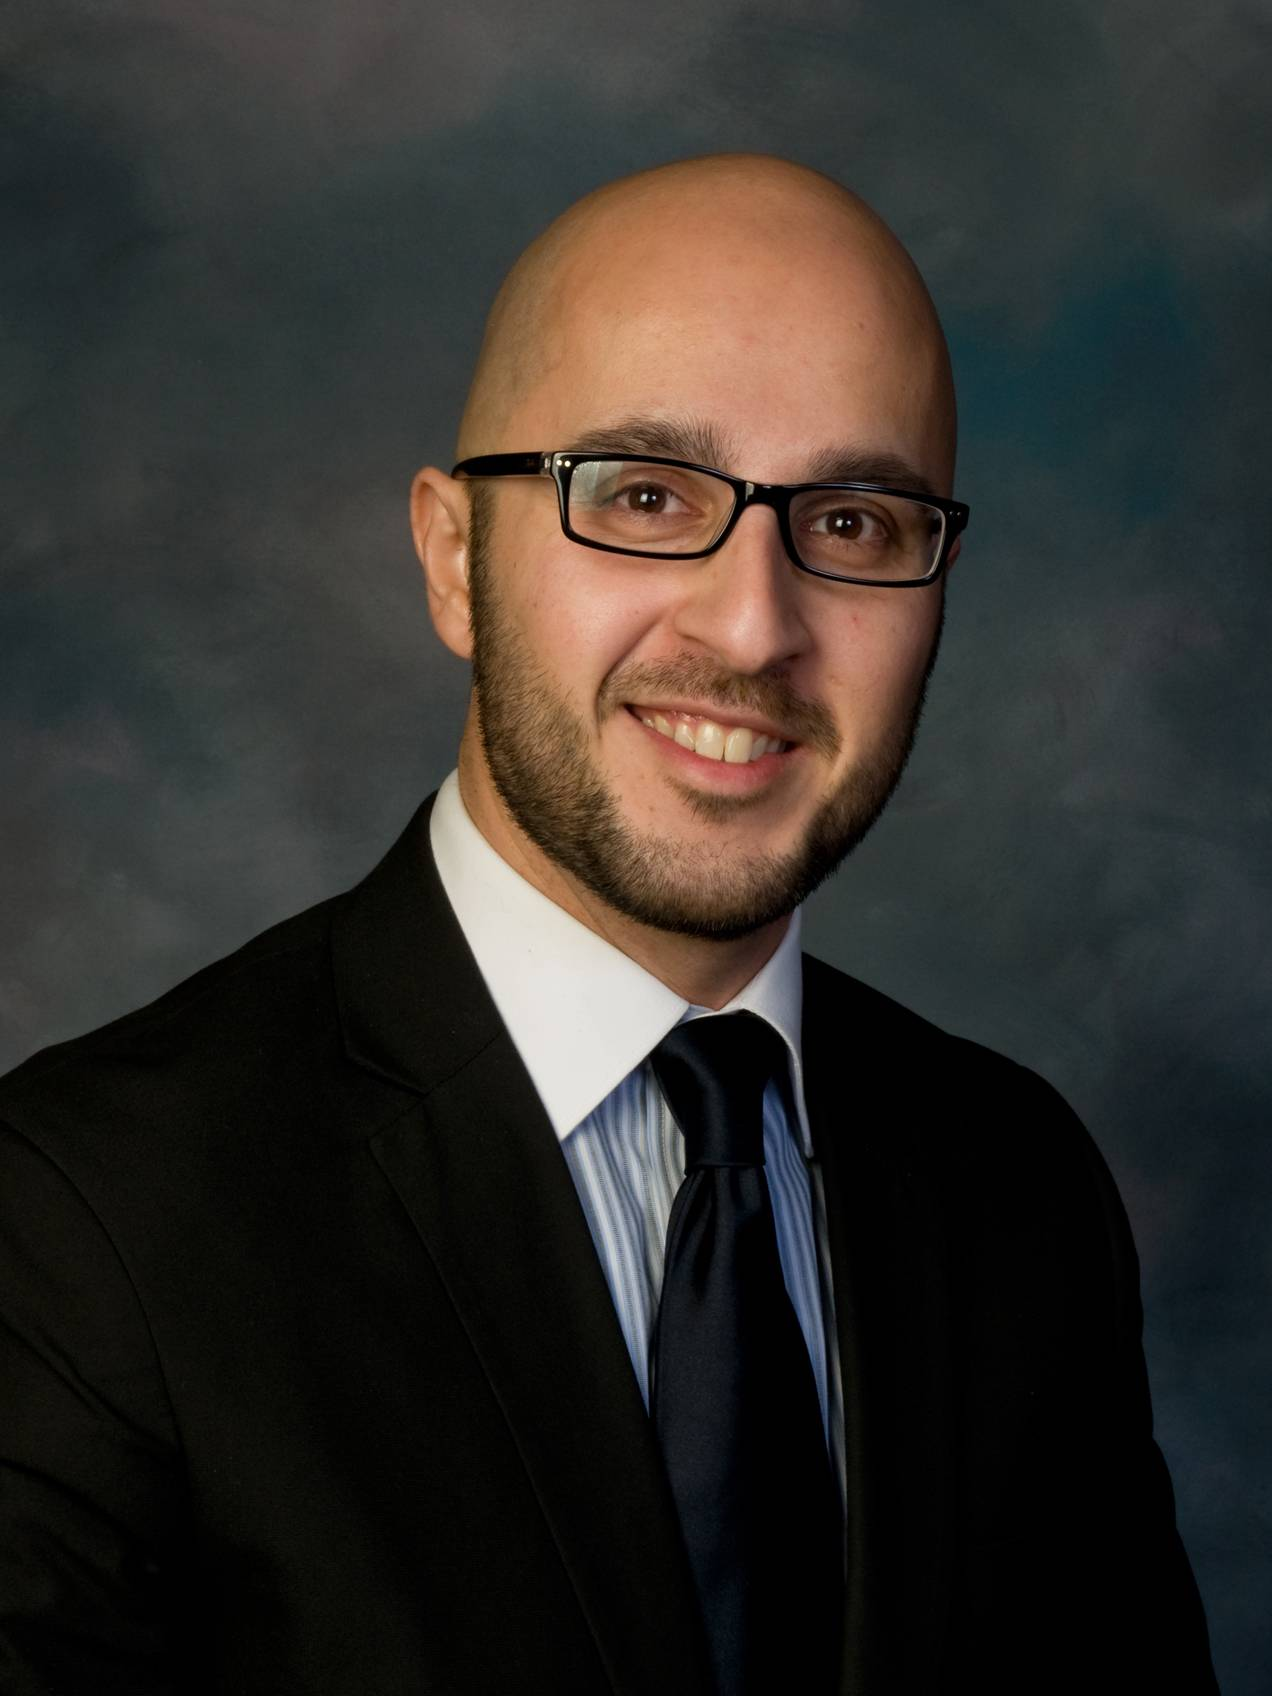 Attorney Amil Alkass has been made a Partner at Lavelle Law, Ltd.